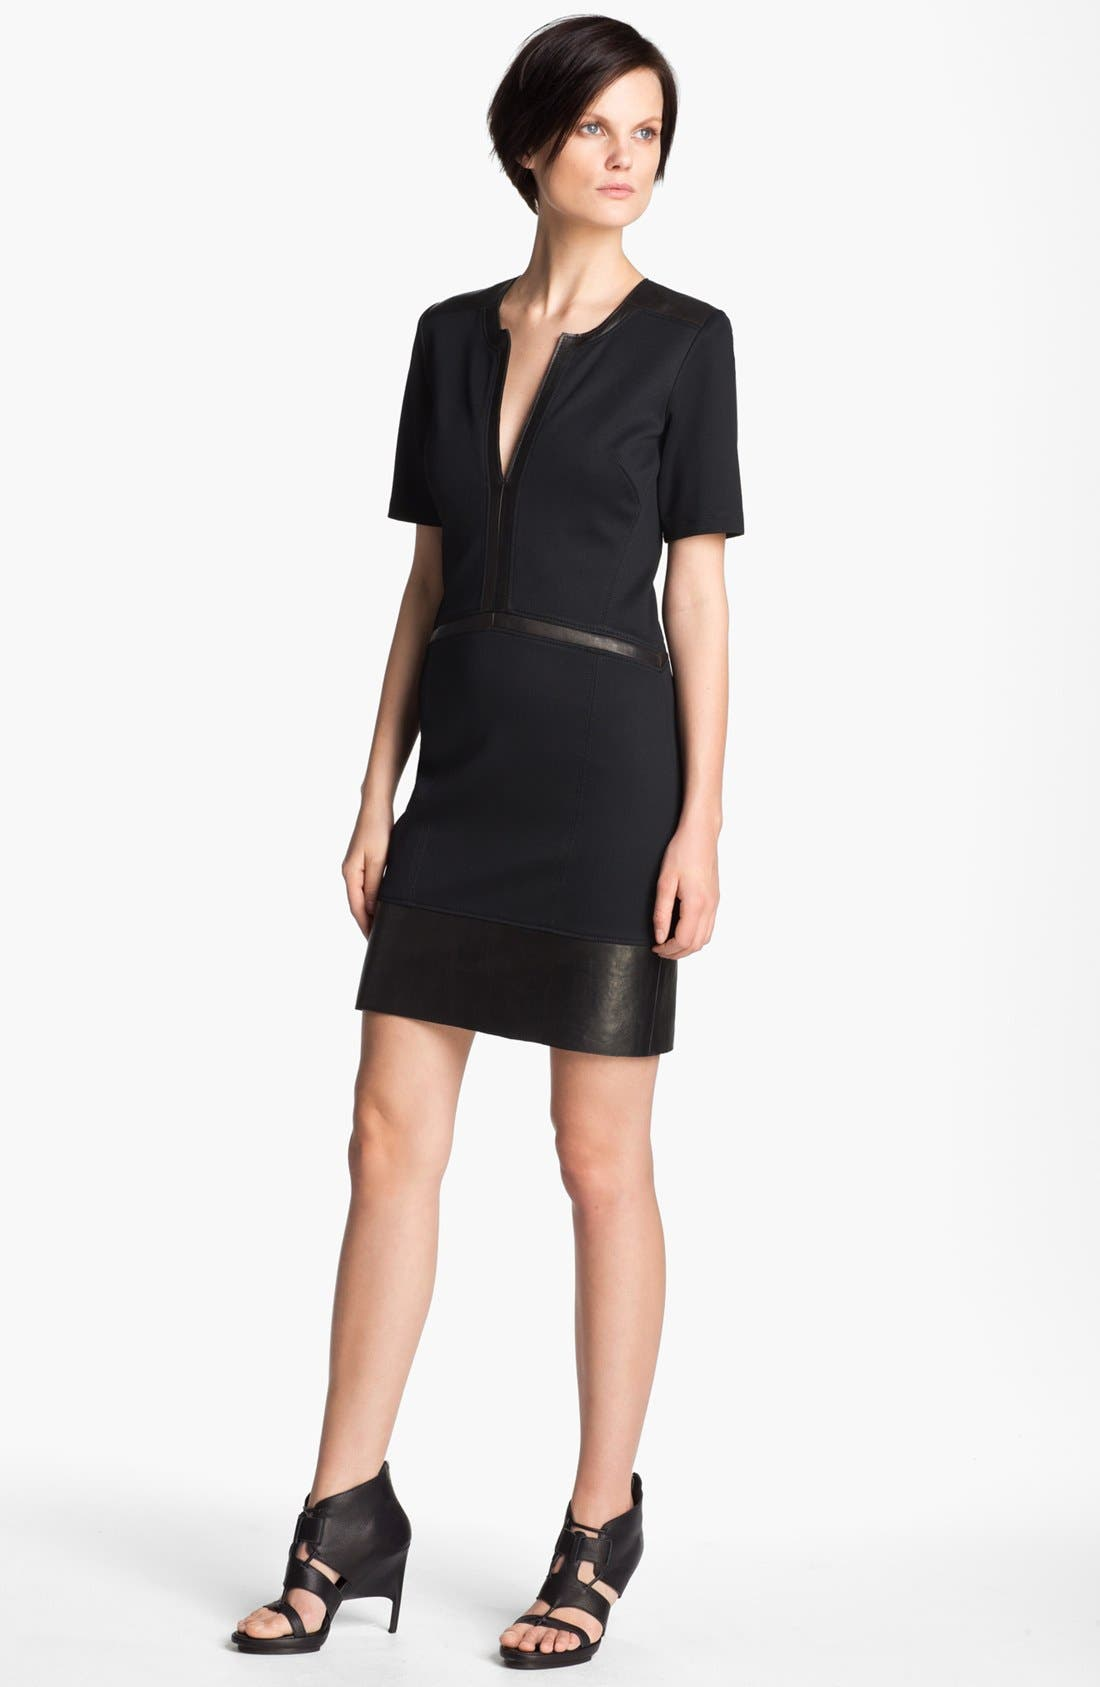 Alternate Image 1 Selected - Helmut Lang 'Motion' Leather Trim Dress